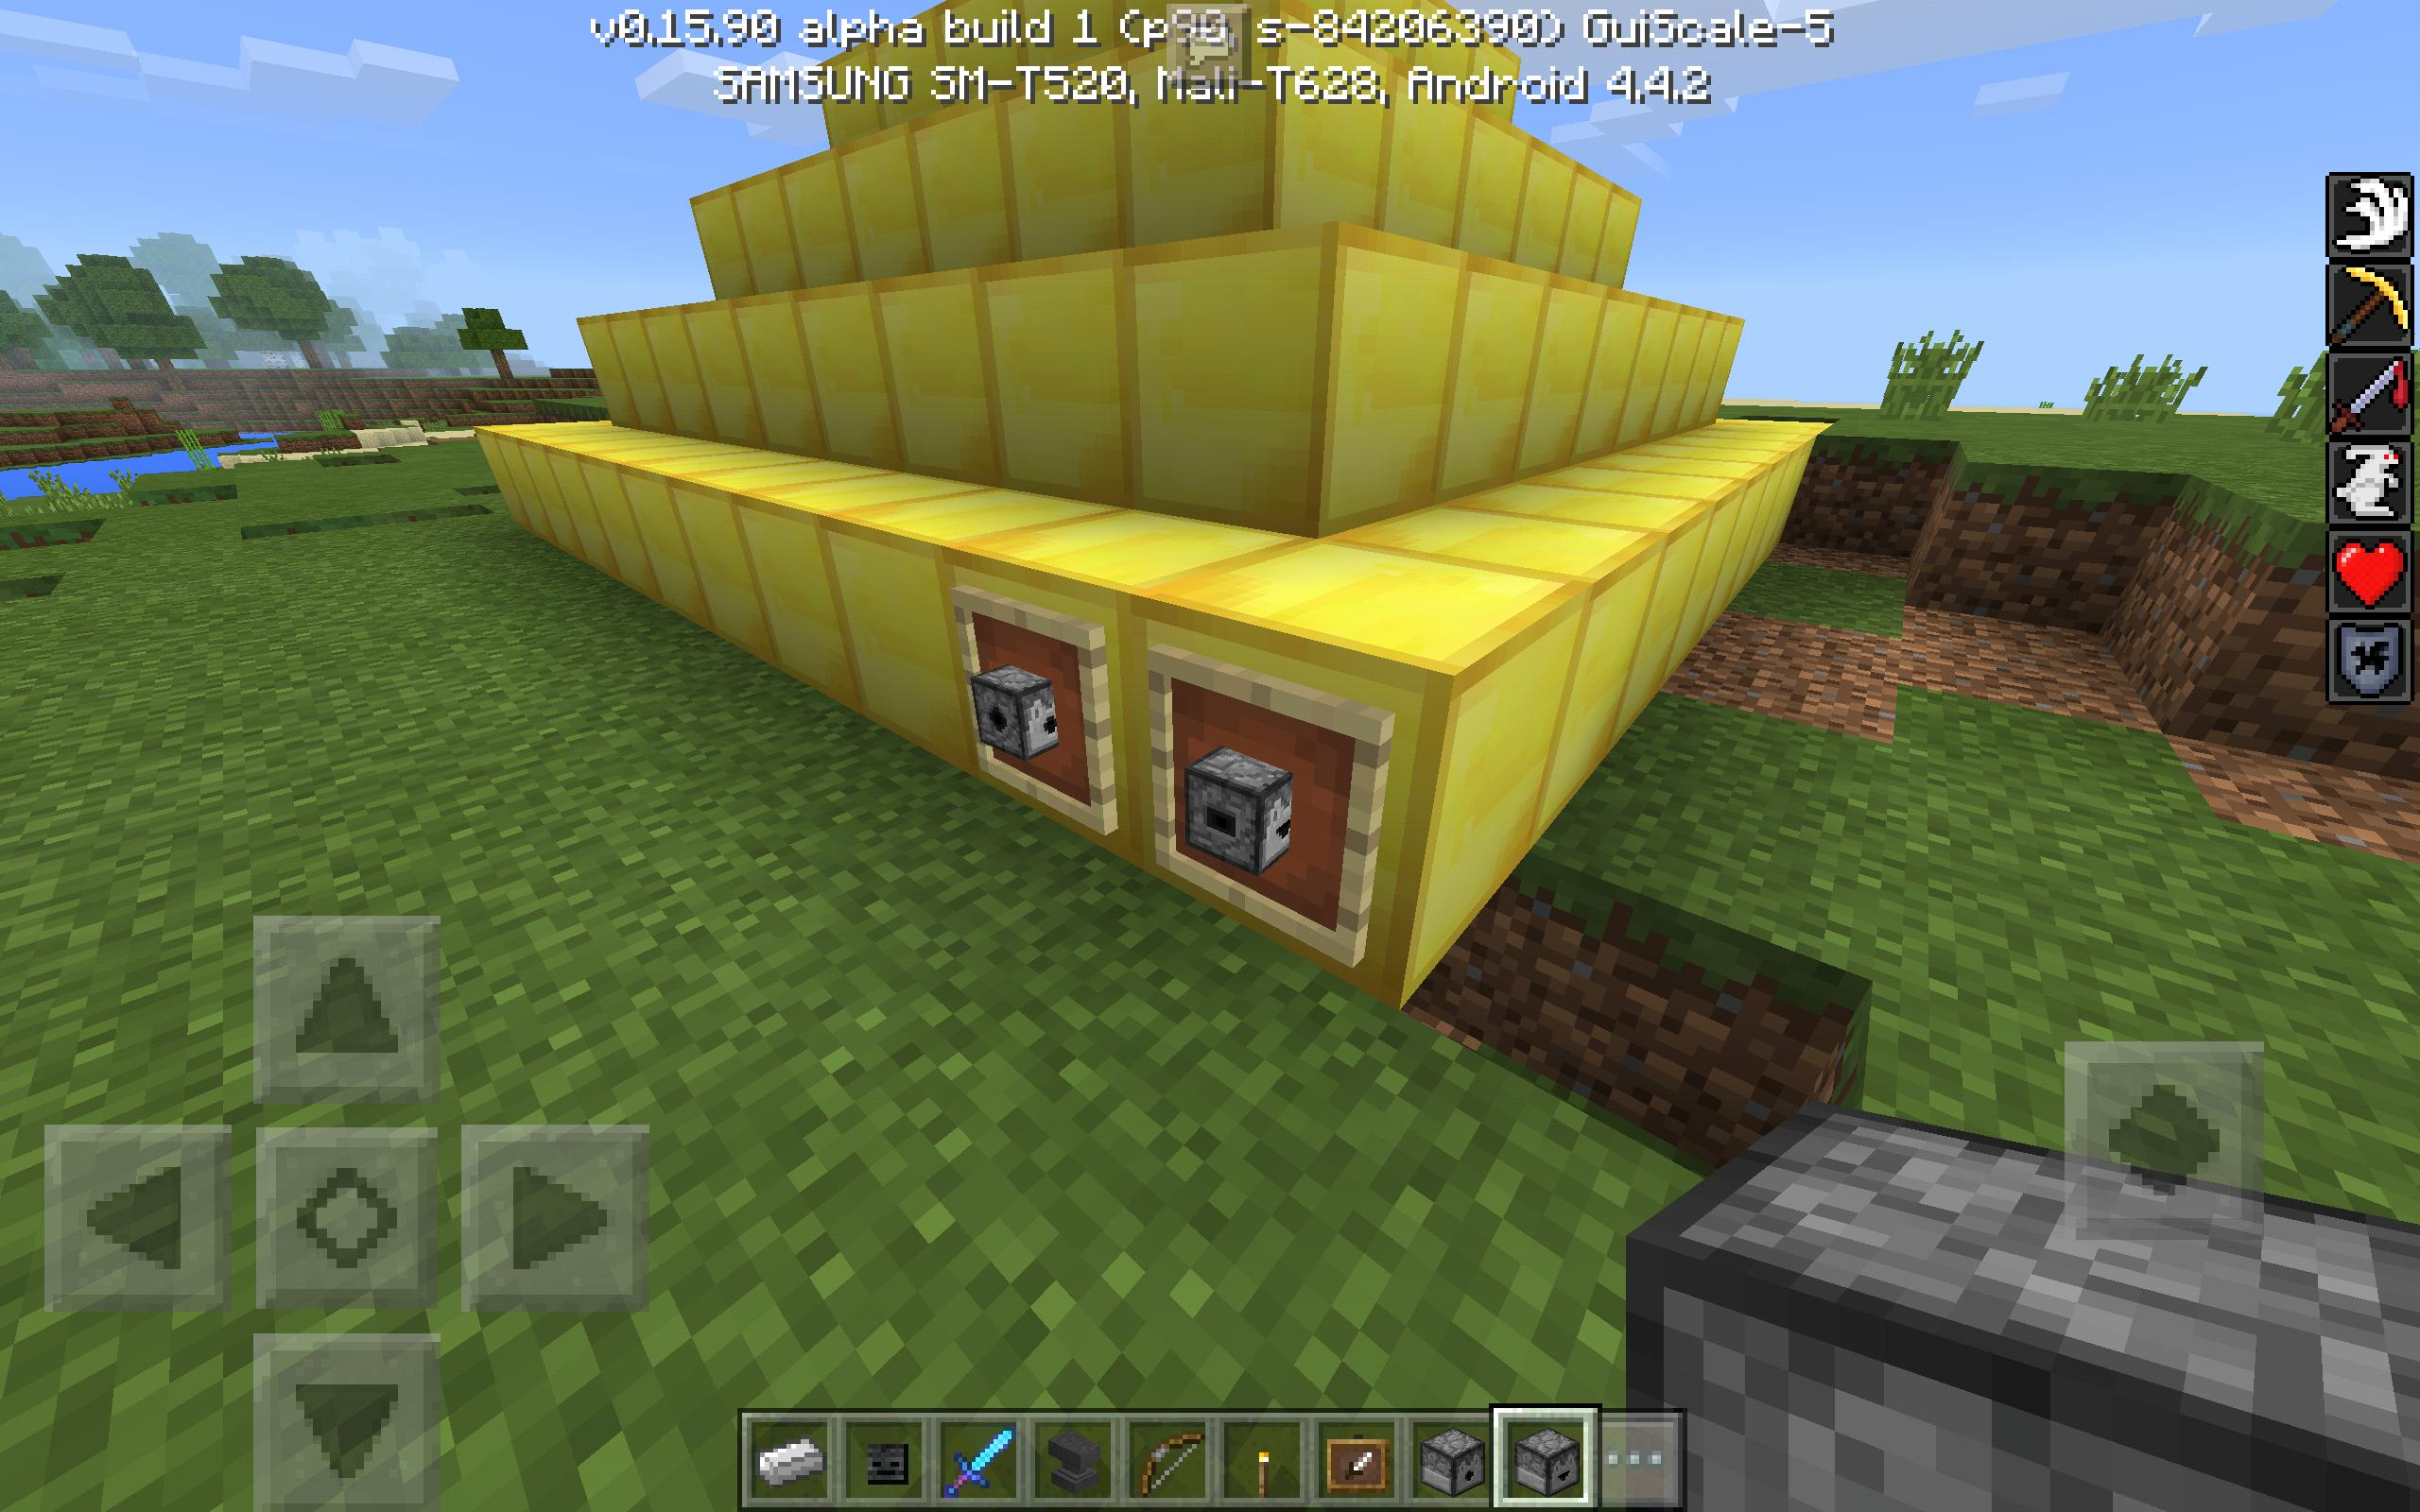 MCPE-14635] Item models for droppers and dispensers are incorrect ...